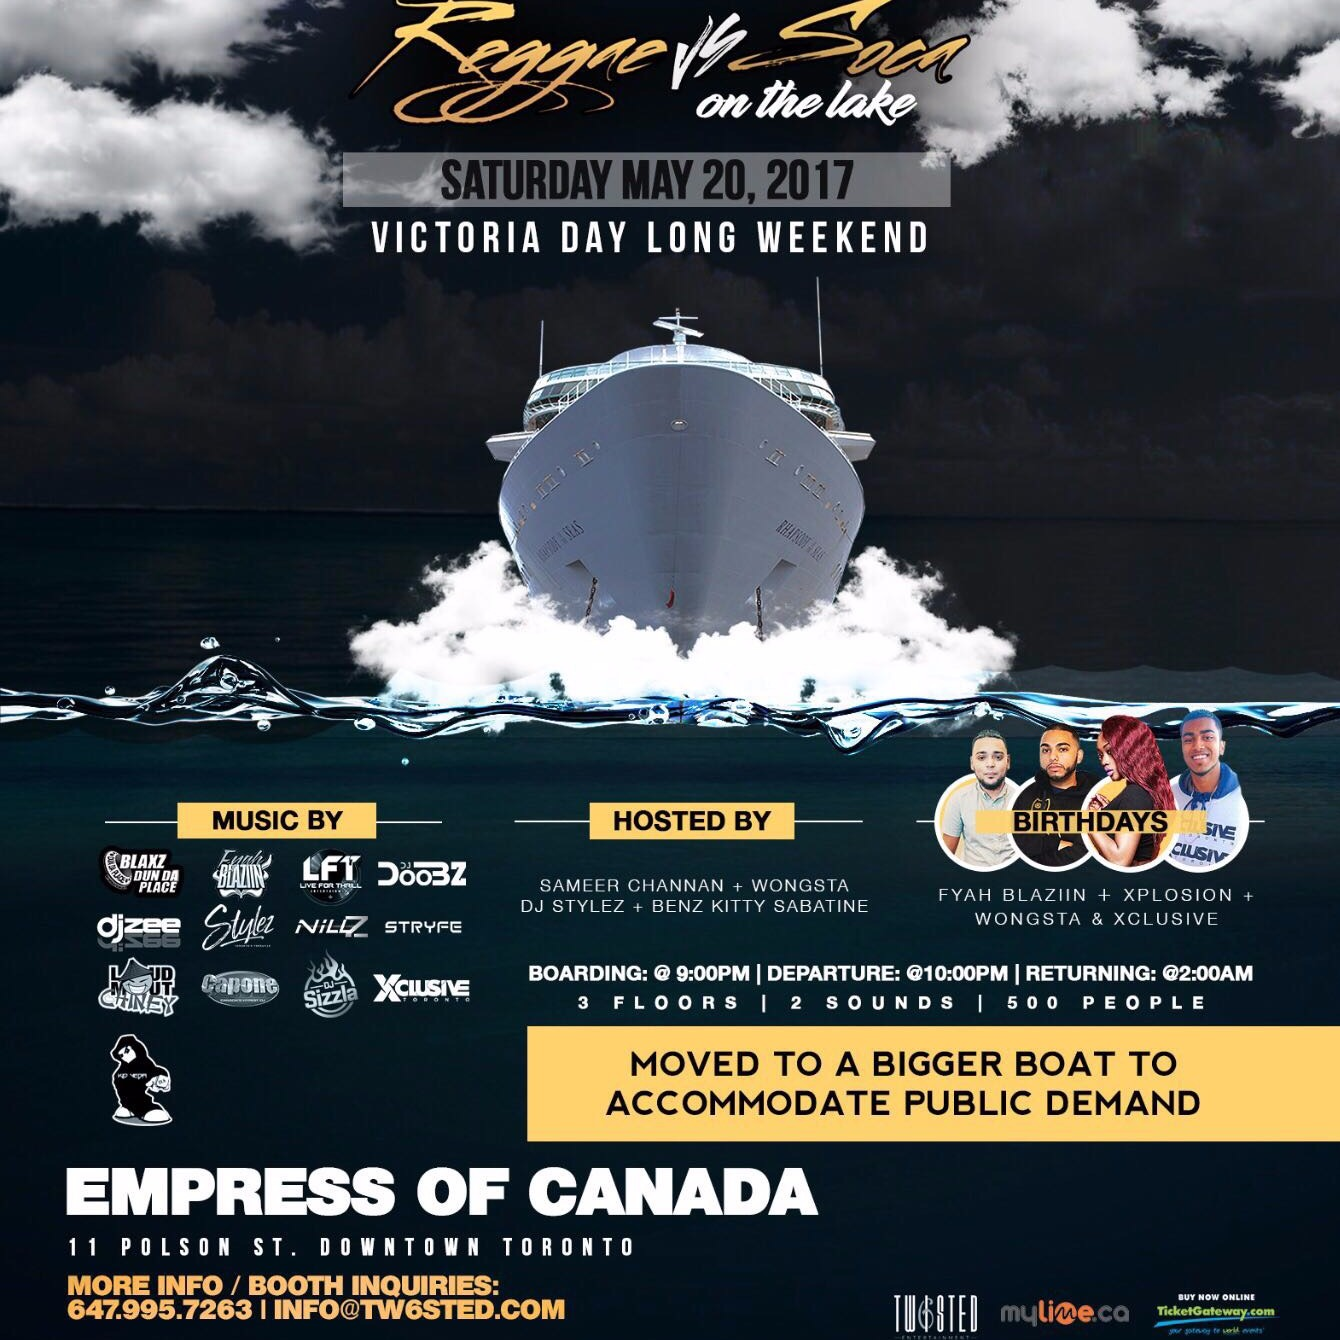 Reggae VS Soca On The Lake  - Victoria Day Long Weekend - May 20th 2017